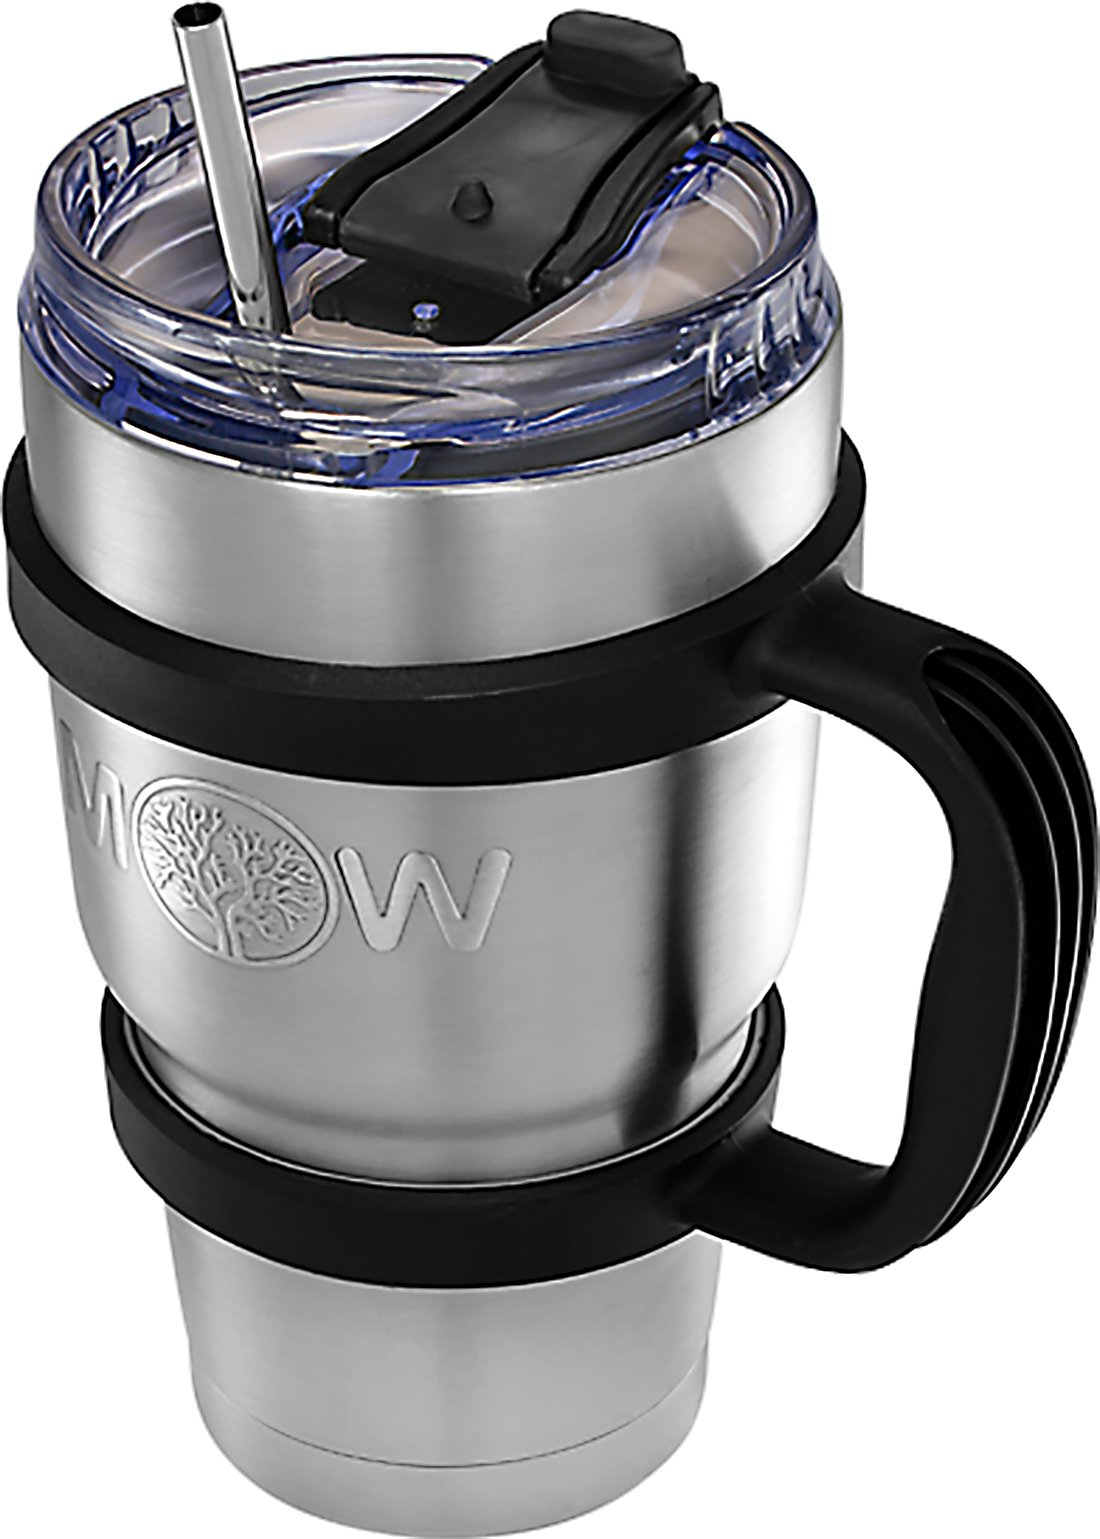 Insulated Stainless Steel Tumbler - 30 oz Cup Set with Handle and Spill Proof Lid Complete Bundle with Stainless Steel Reusable Straw - Large Coffee Travel Mug Works Great for Ice Drink/Hot Beverage